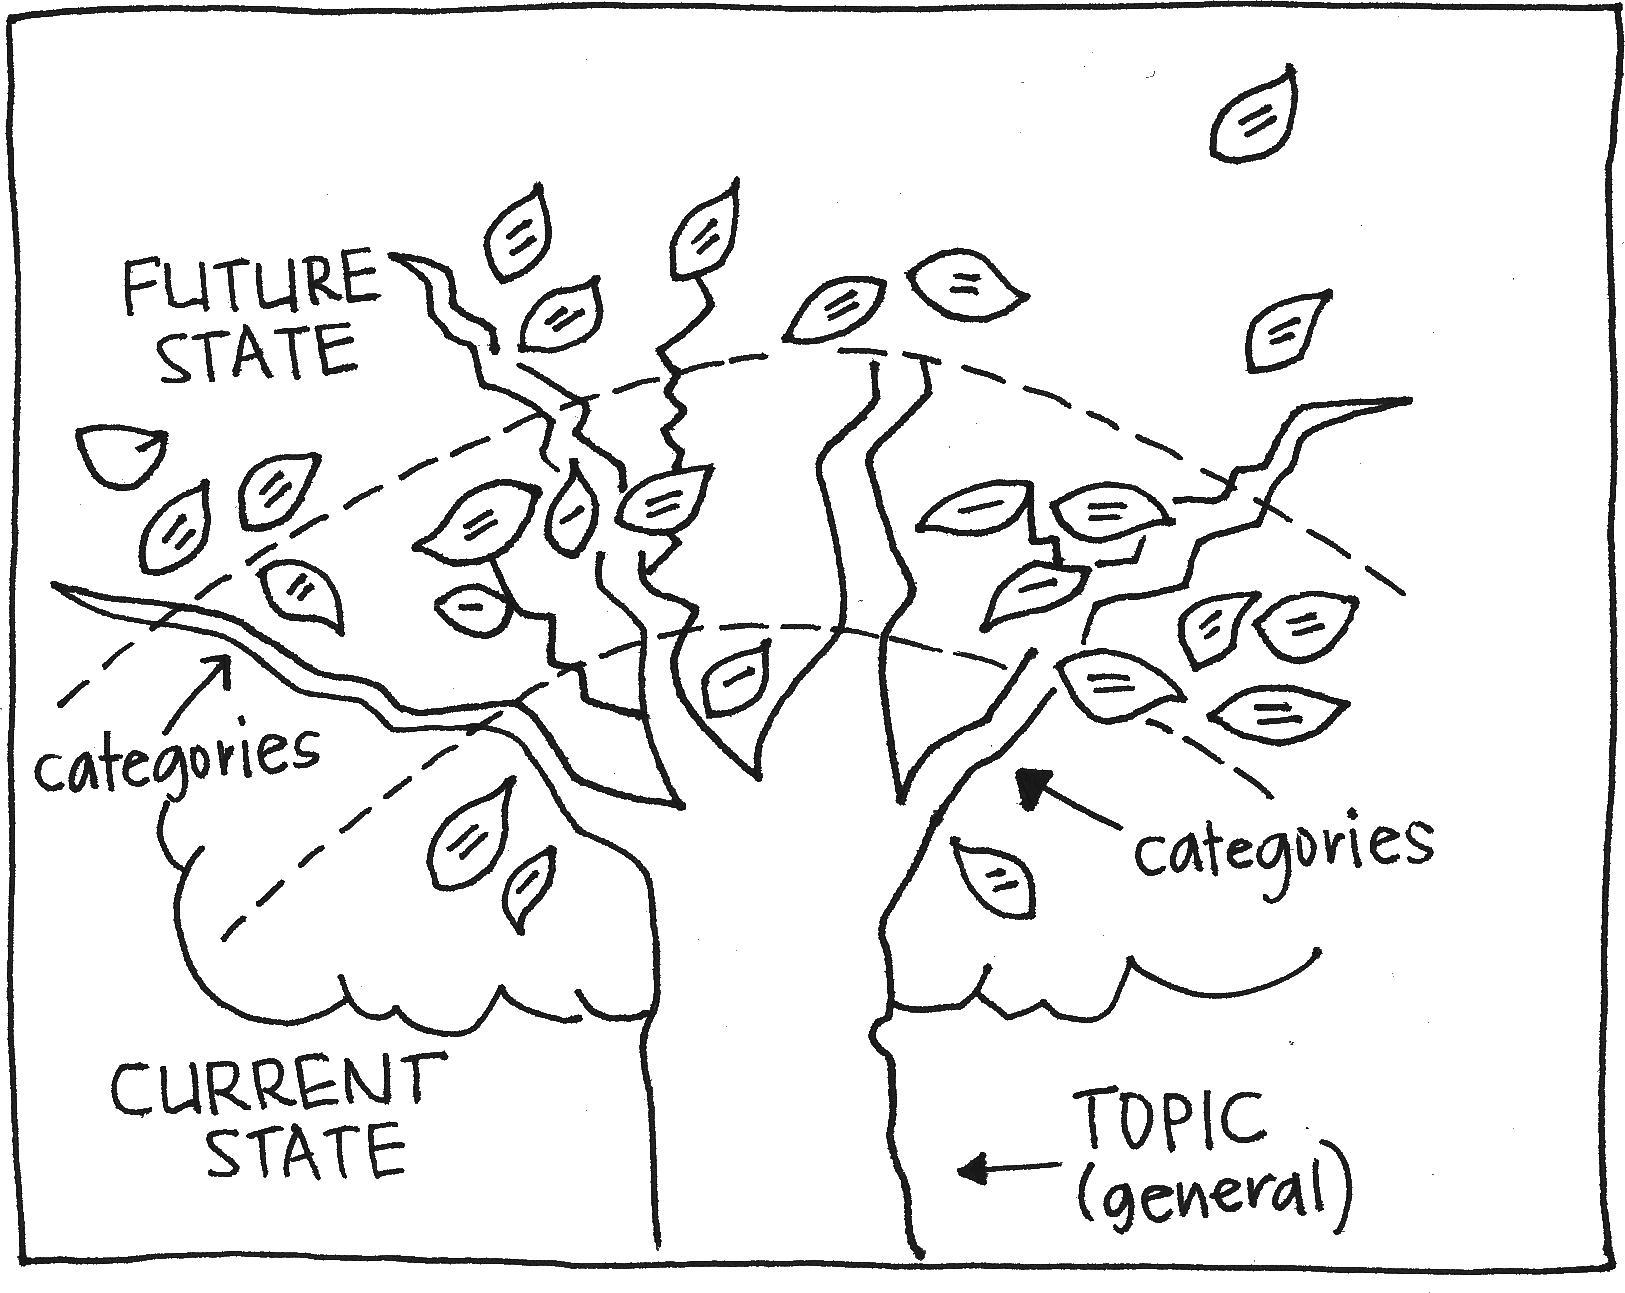 games for vision and strategy meetings archives gamestorming Endocrine System Diagram Labeled prune the future